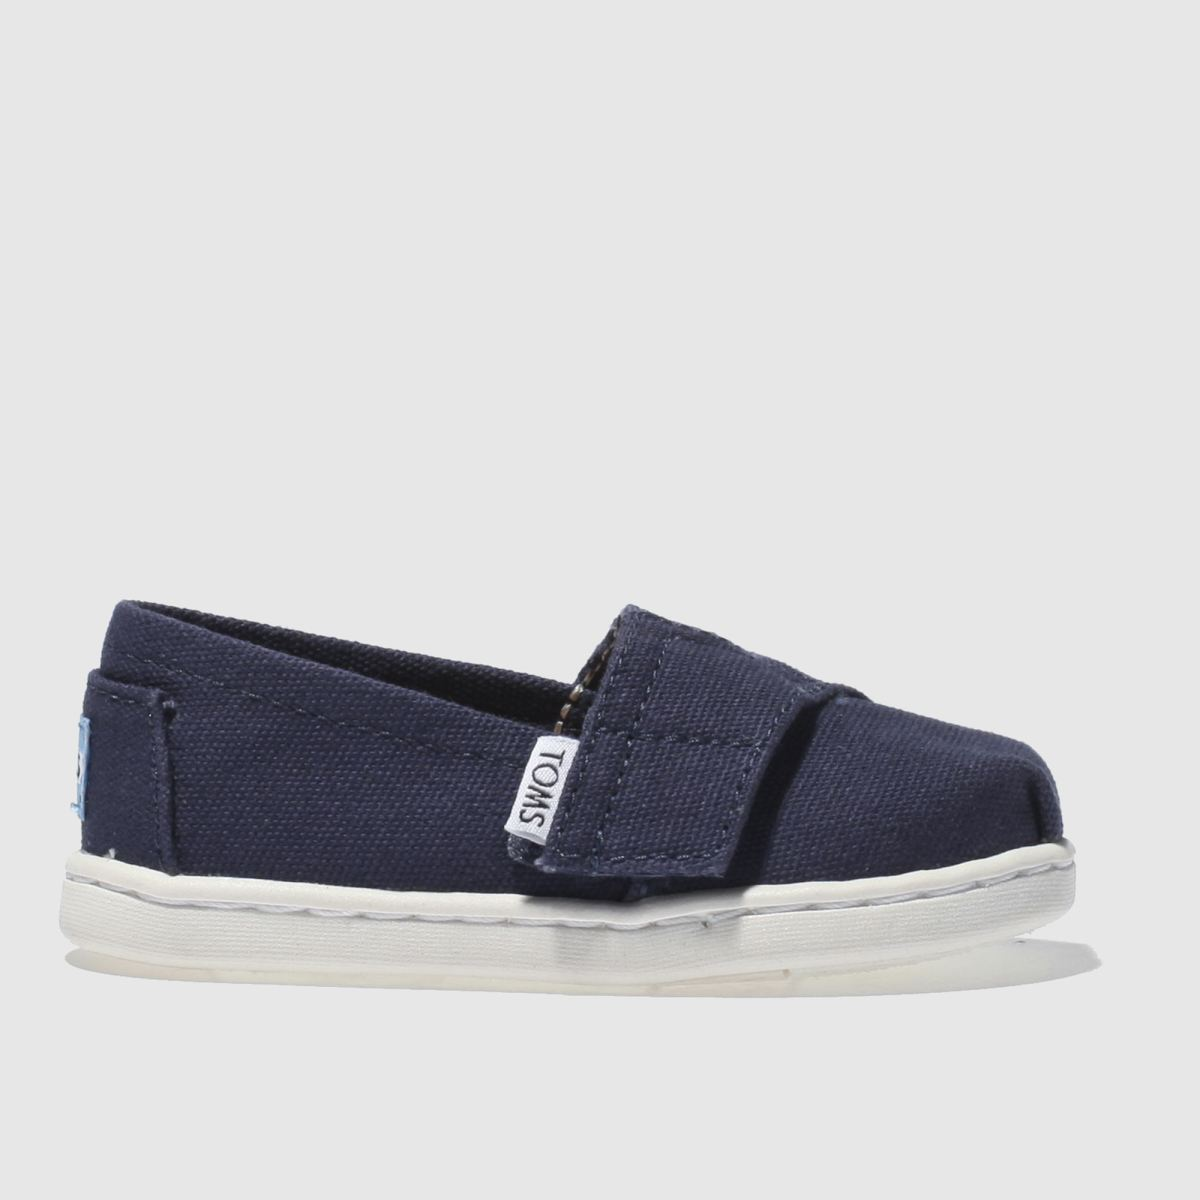 Toms Navy Classic Unisex Toddler Toddler